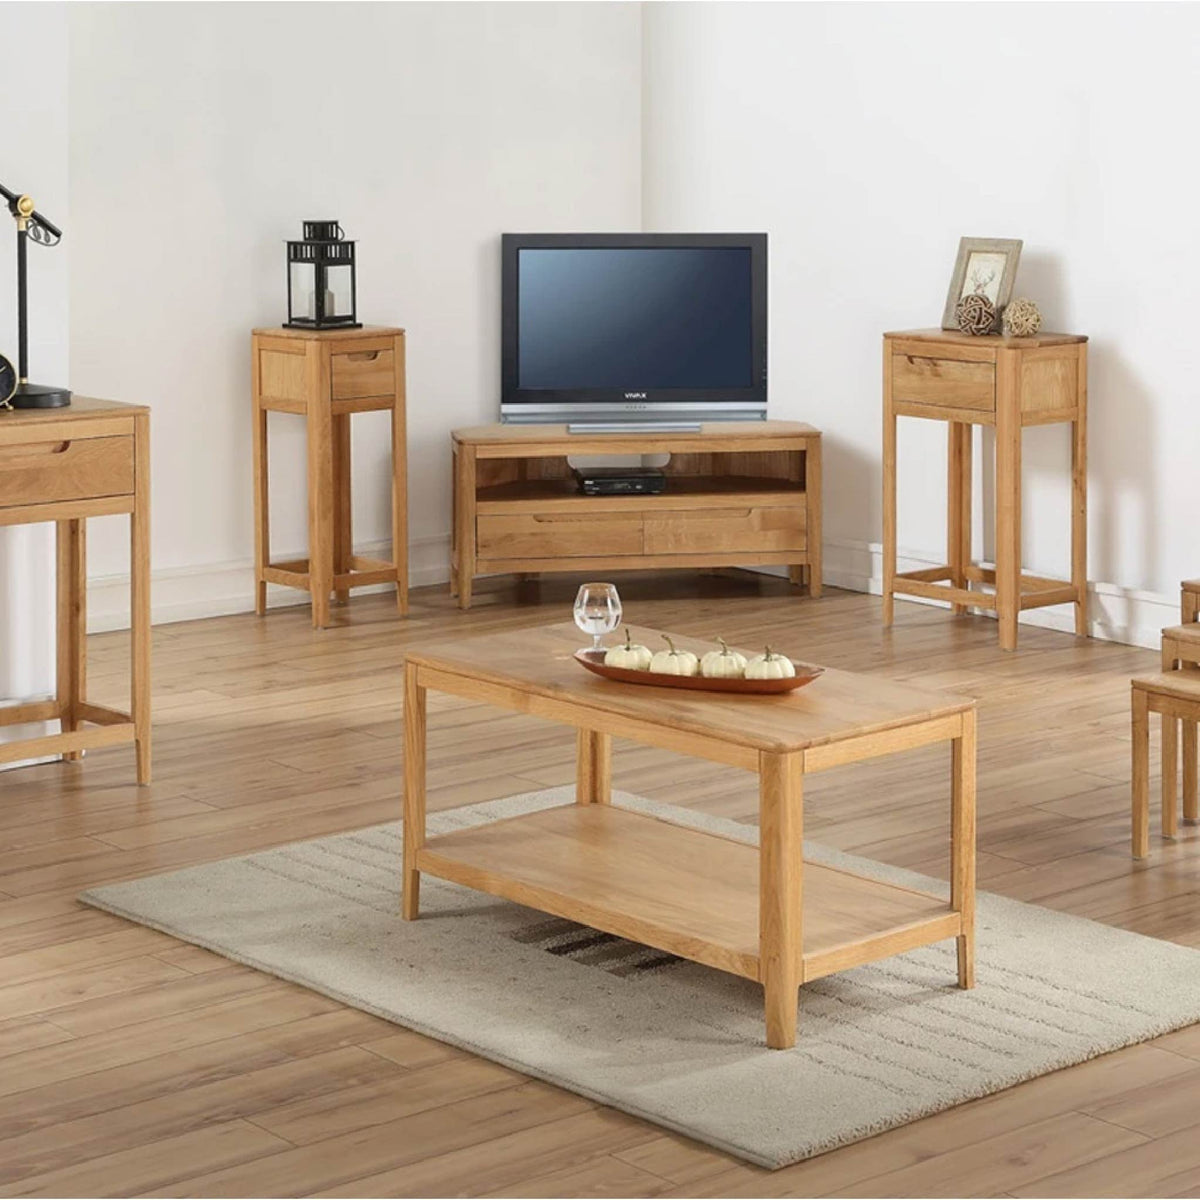 Dunmore Oak Console Hall Table range view